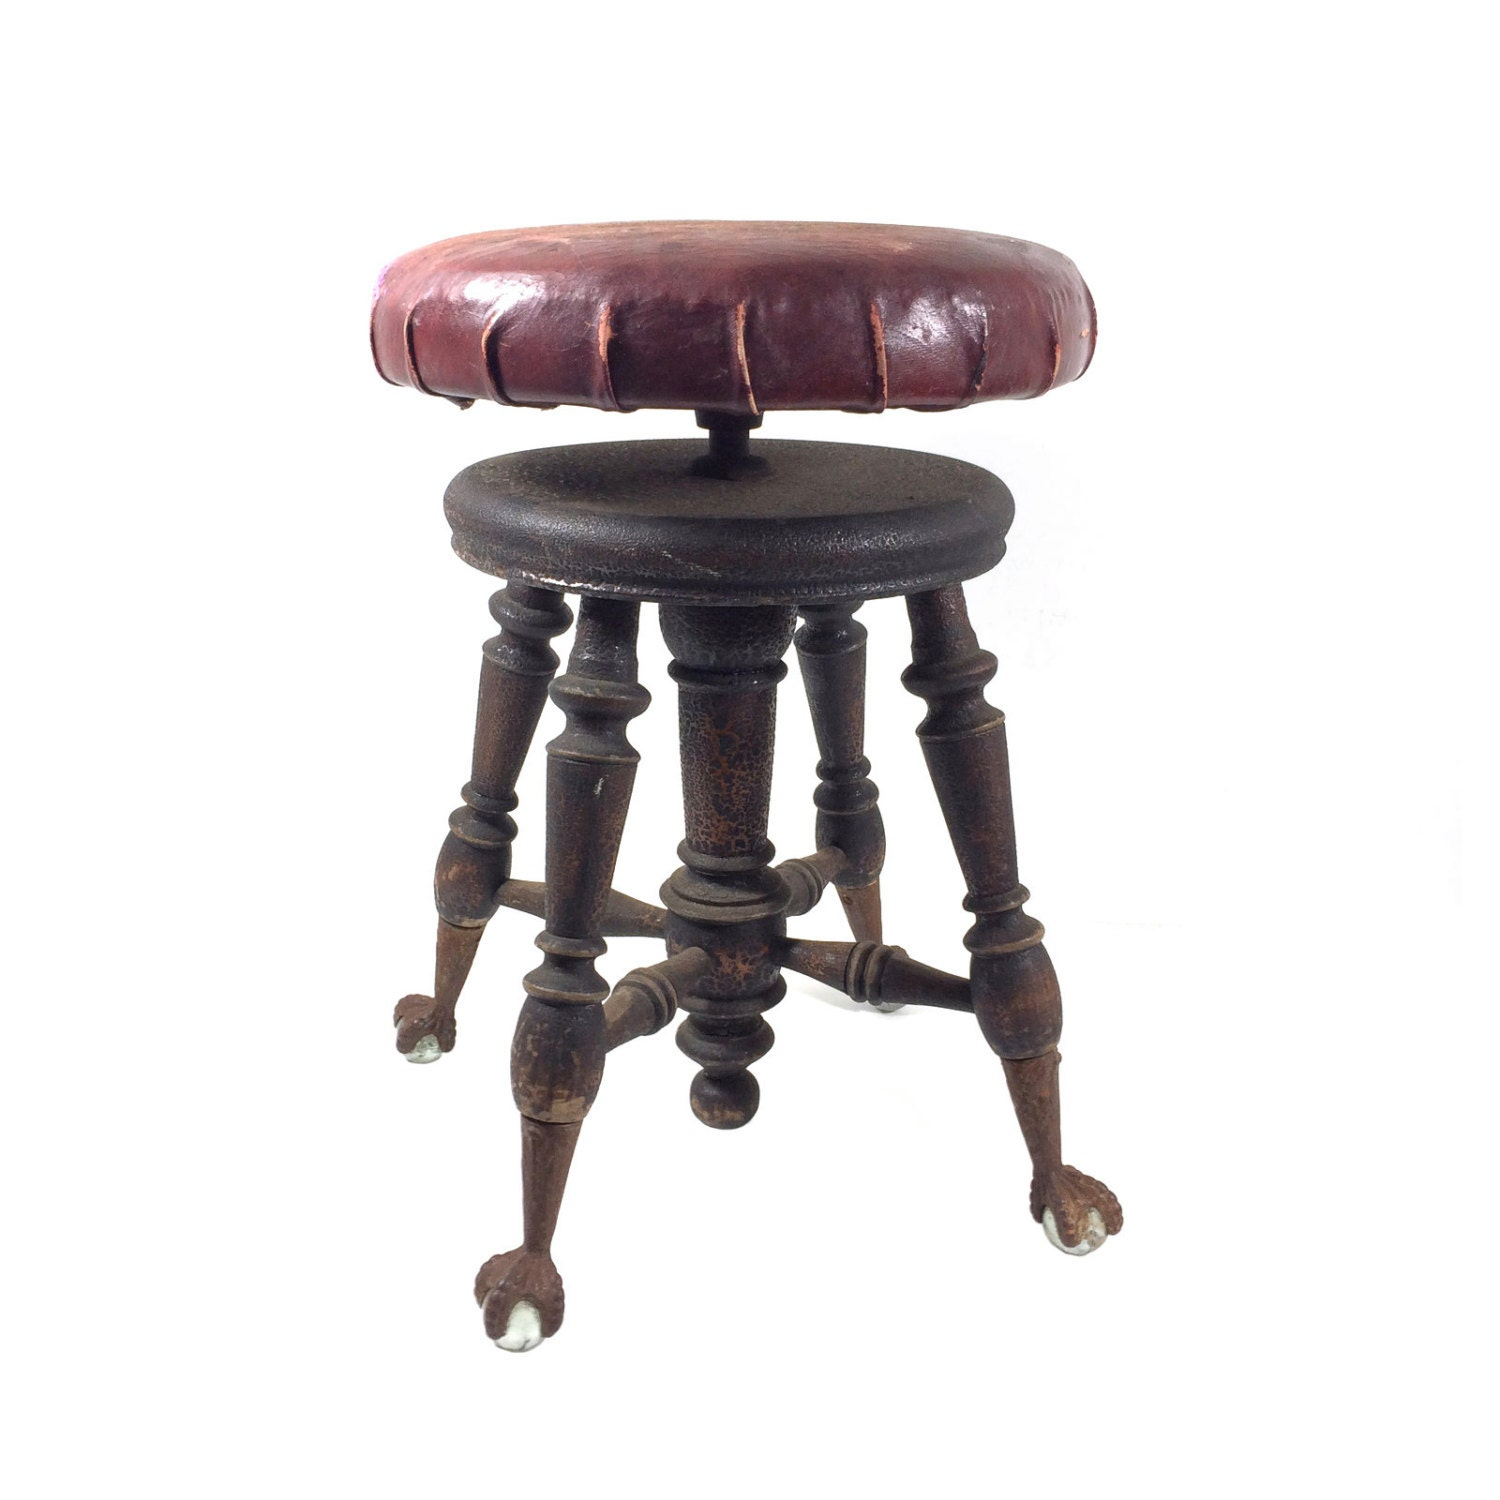 Antique Piano Stool With Claw Amp Ball Feet And Red Leather